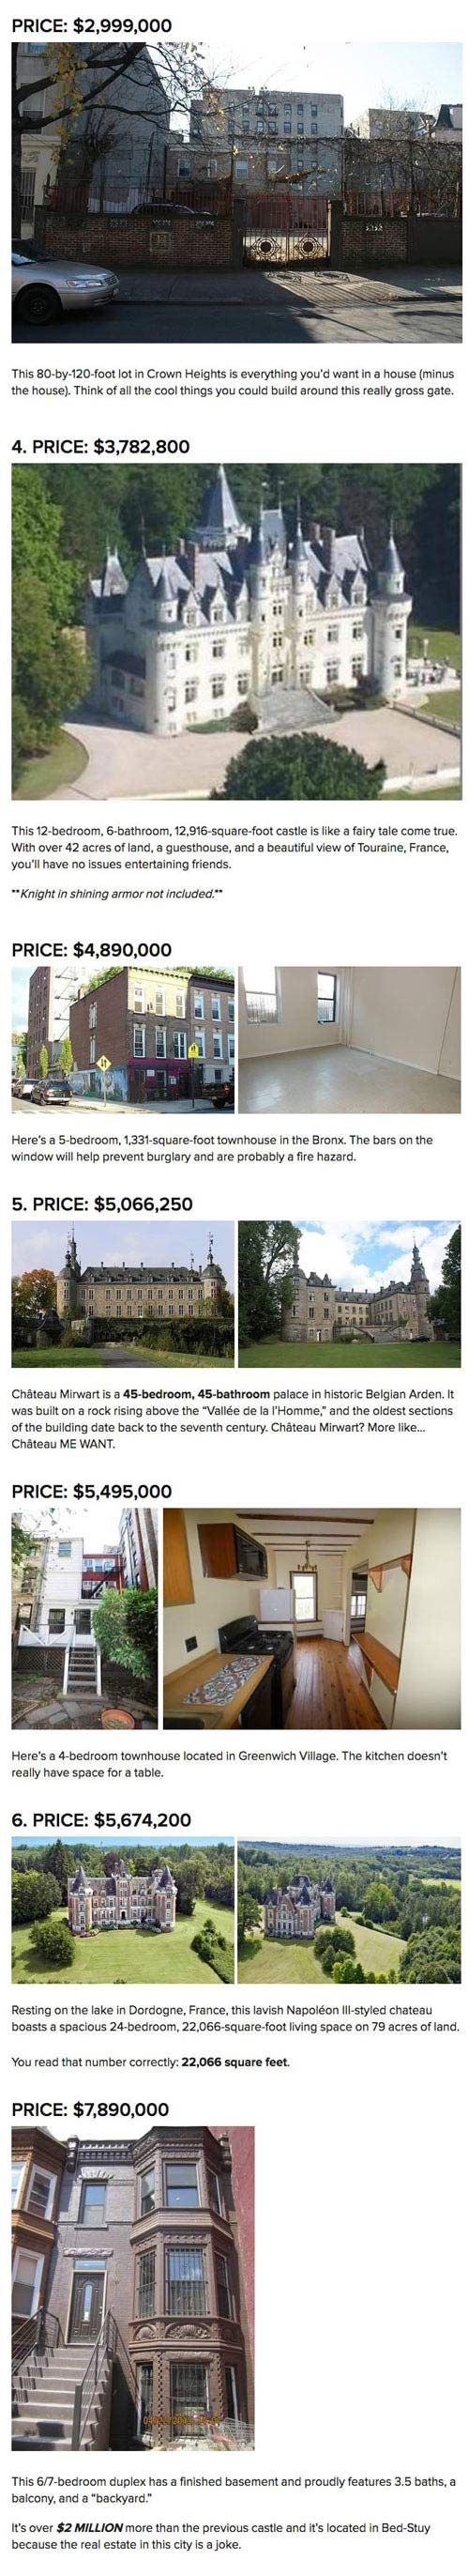 Wishing The Beatles A Happy Th Anniversary Of Their American - 6 castles less expensive than an apartment in nyc